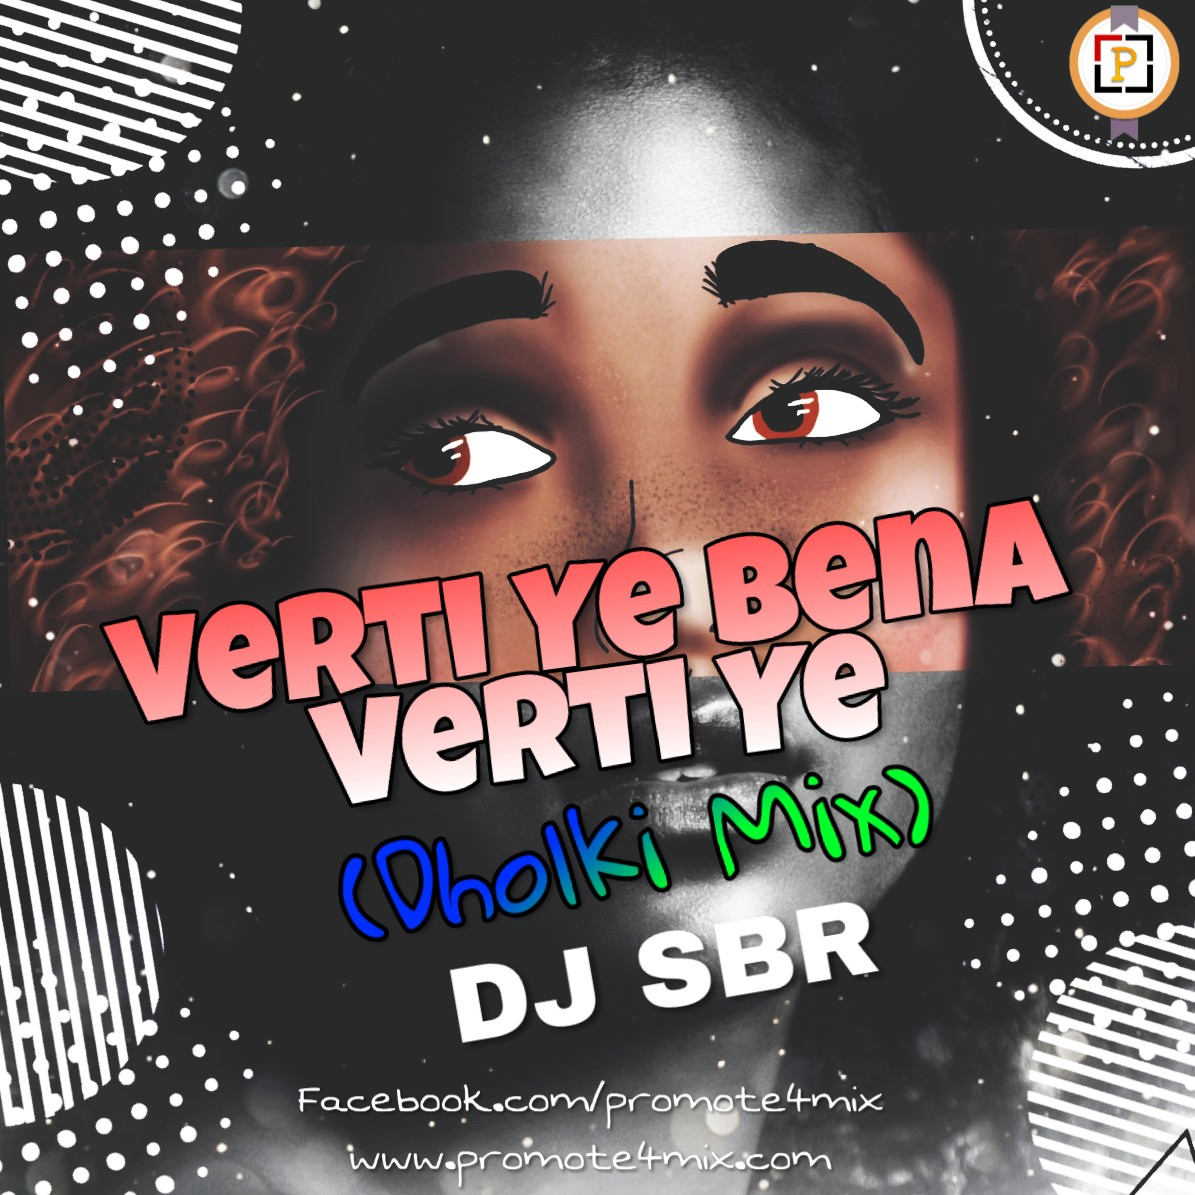 Sakhiyaan Song Mp3 Download: Verti Ye Bena Verti Ye-(Dholki Mix)-DJ SBR